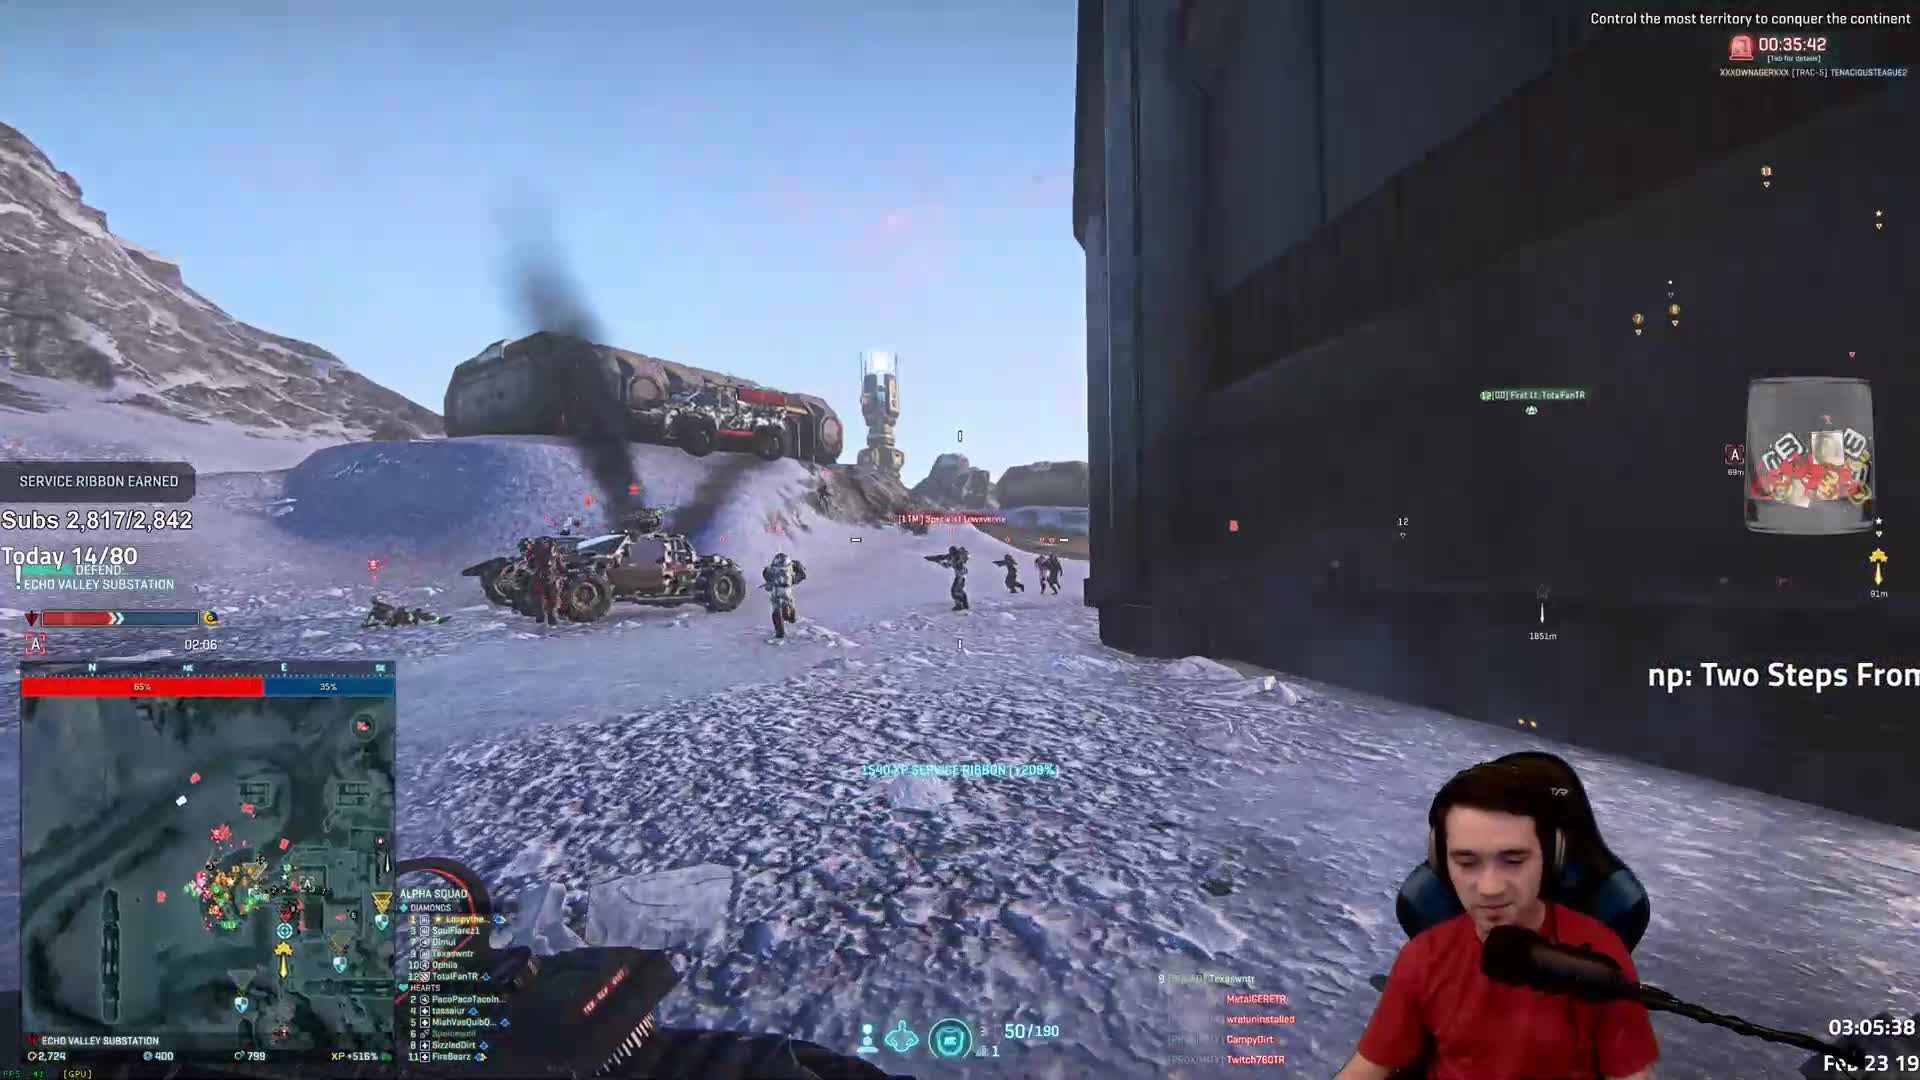 wintergaming - Wintergaming meetsa wild MetalGere - Twitch